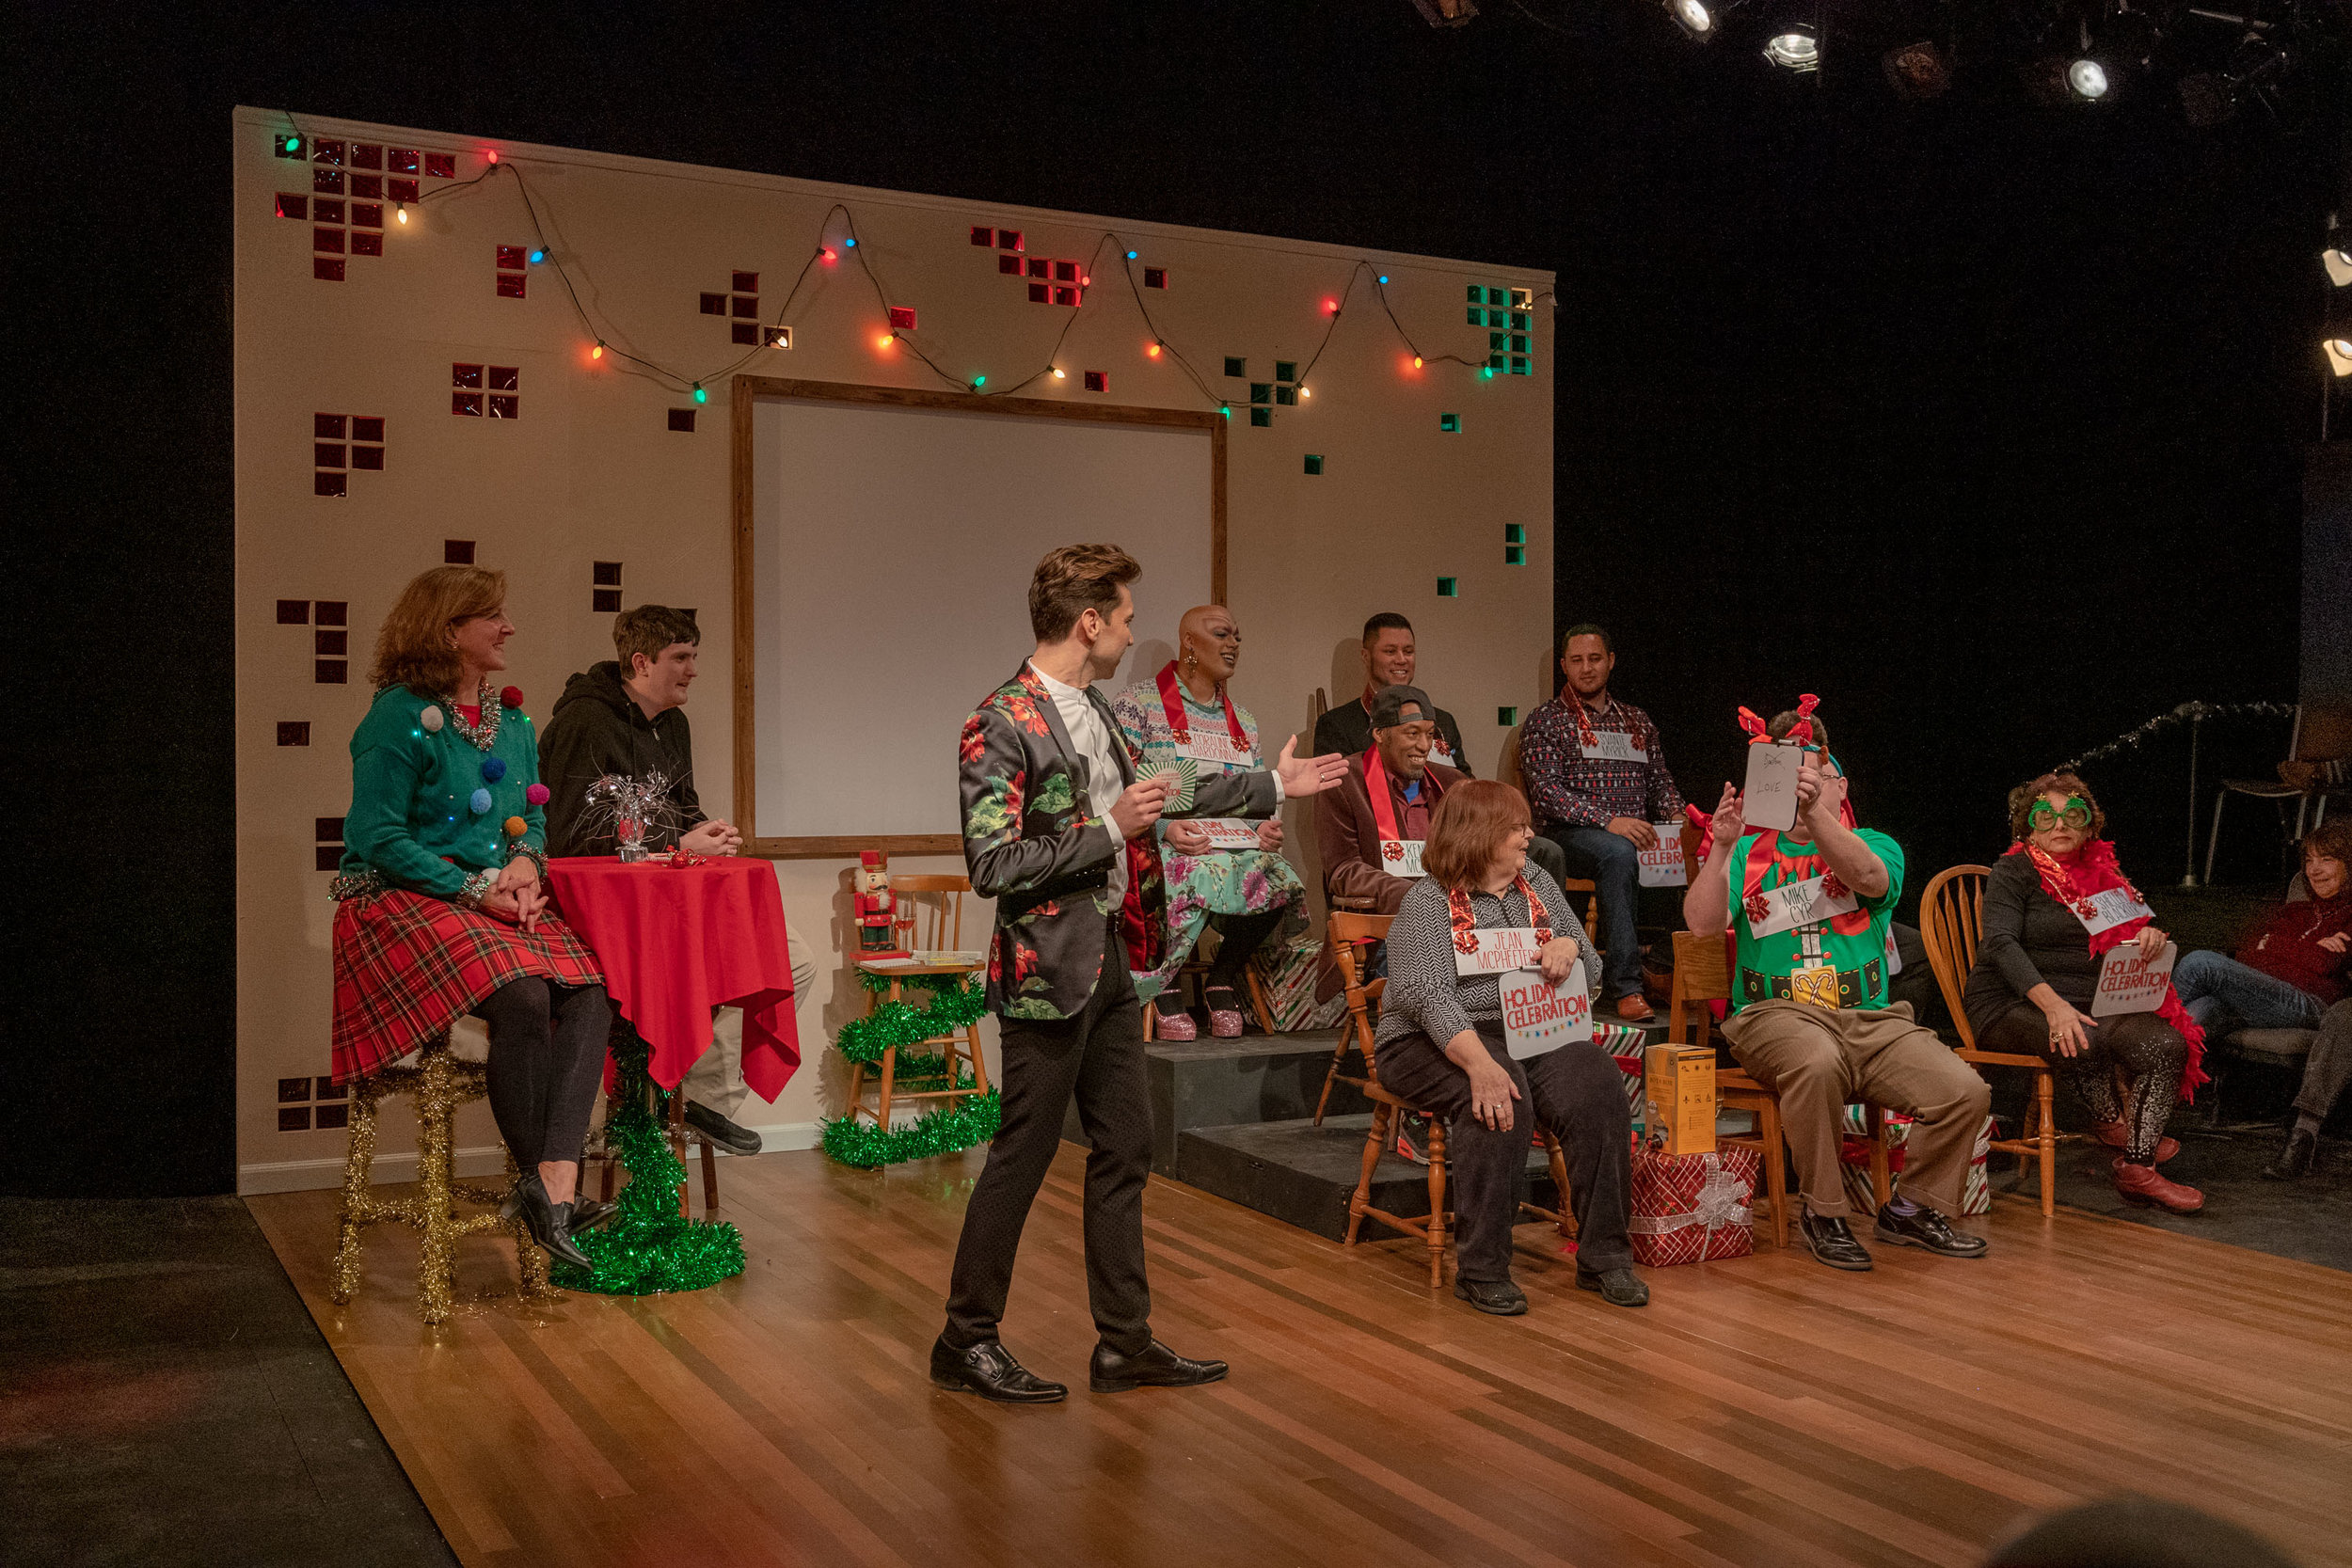 KTC_Holiday_Party_2018-043.jpg